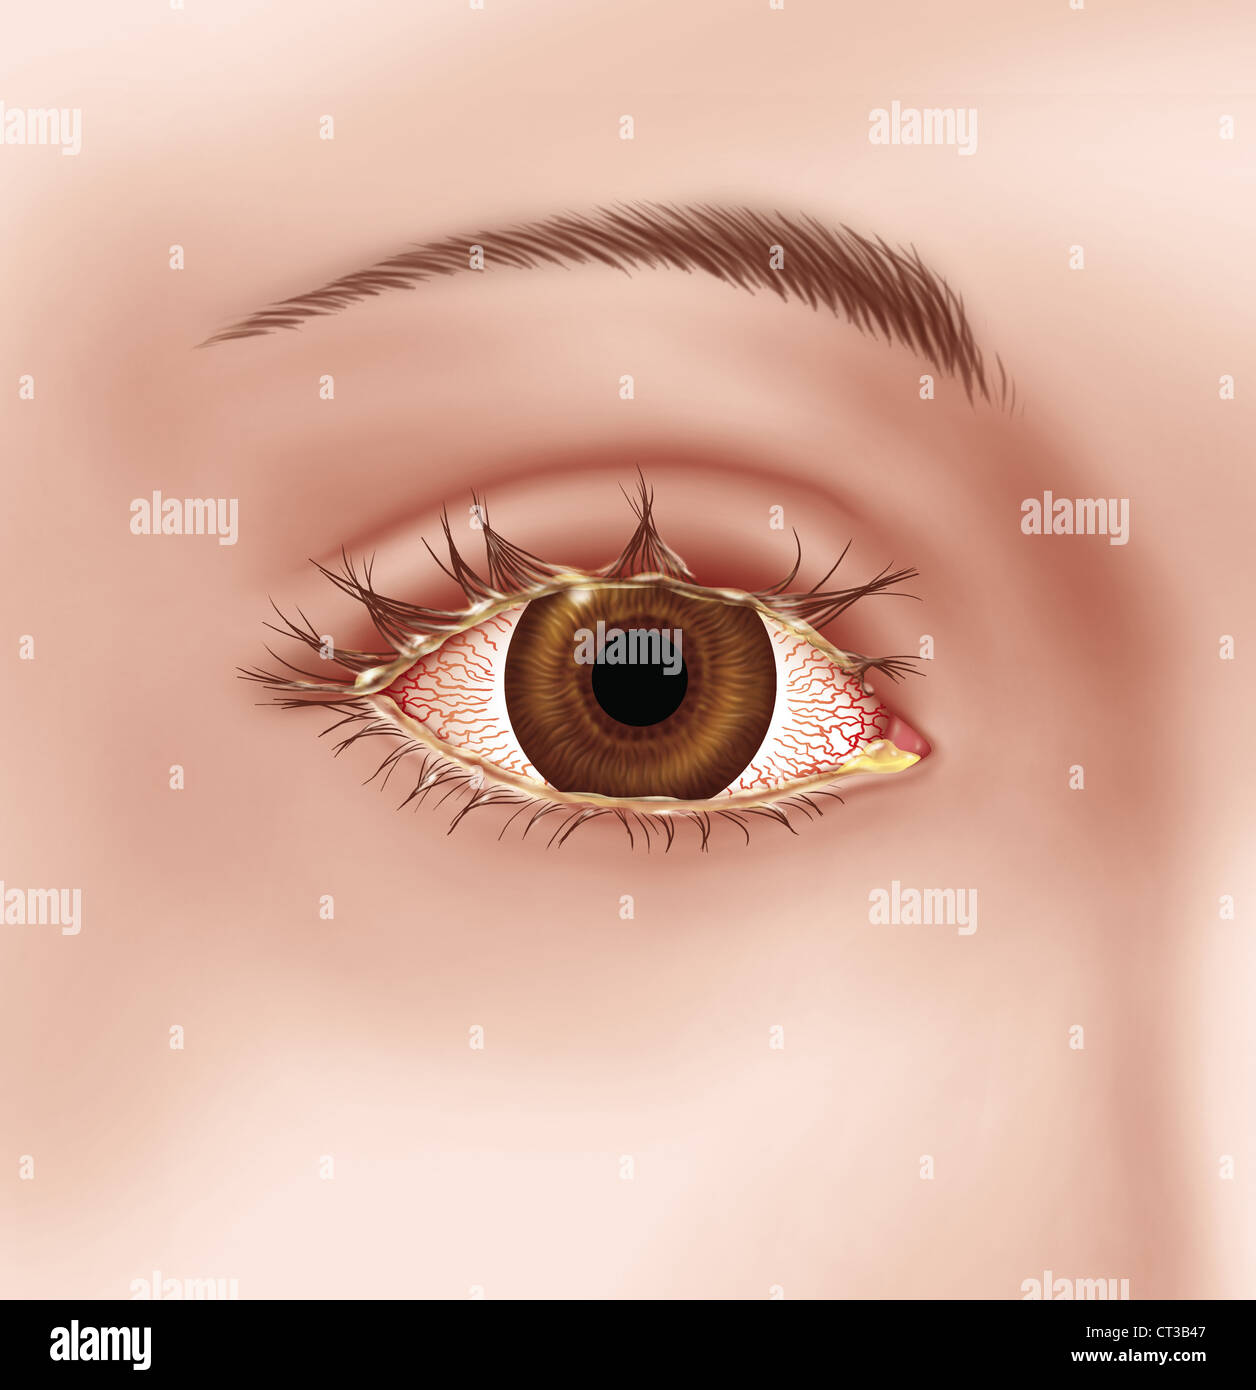 INFECTIOUS CONJUNCTIVITIS, DRAW. - Stock Image